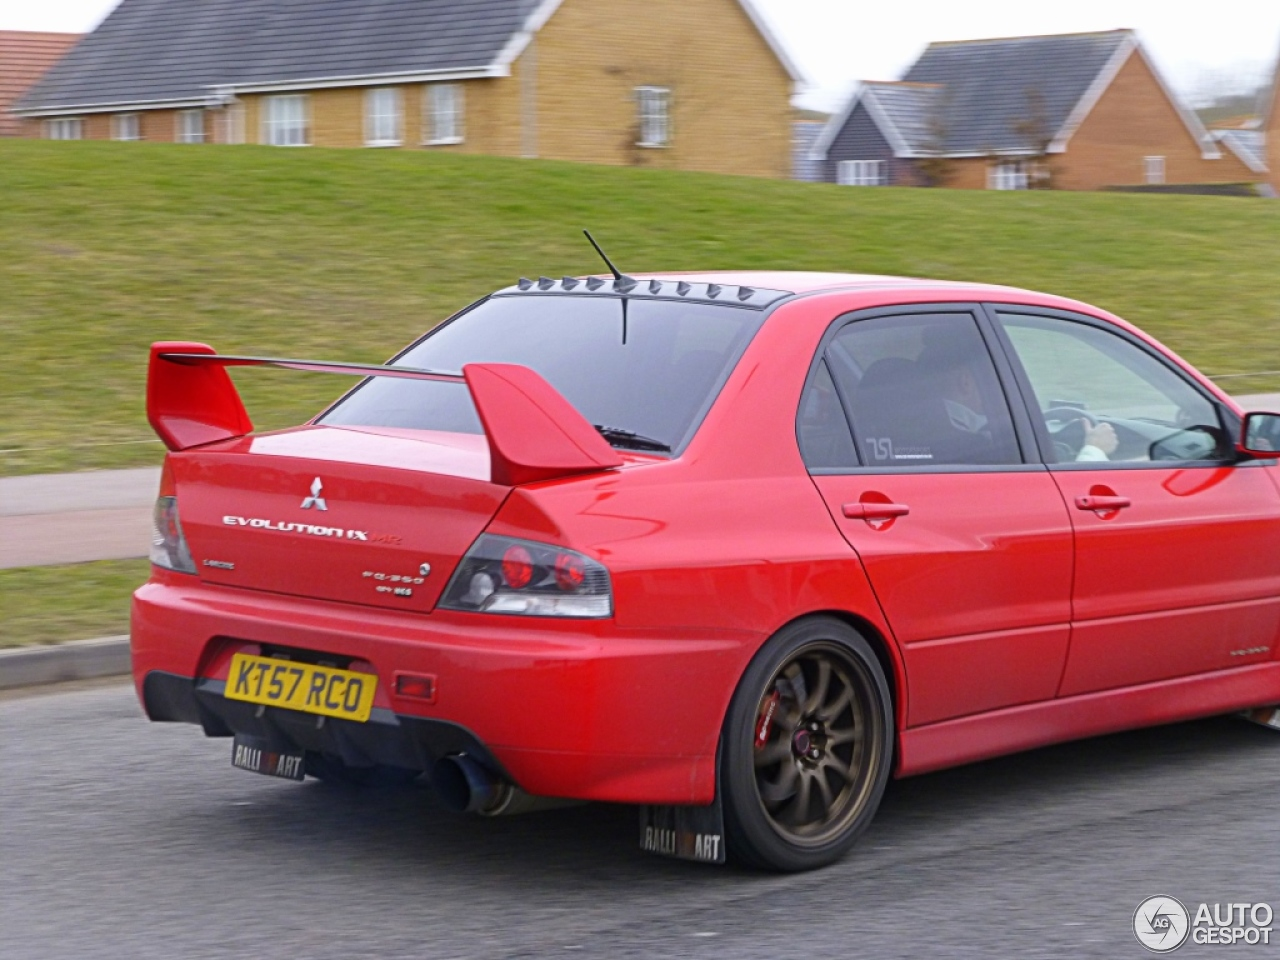 Mitsubishi Lancer Evolution Ix Mr Fq 360 By Hks 26 April